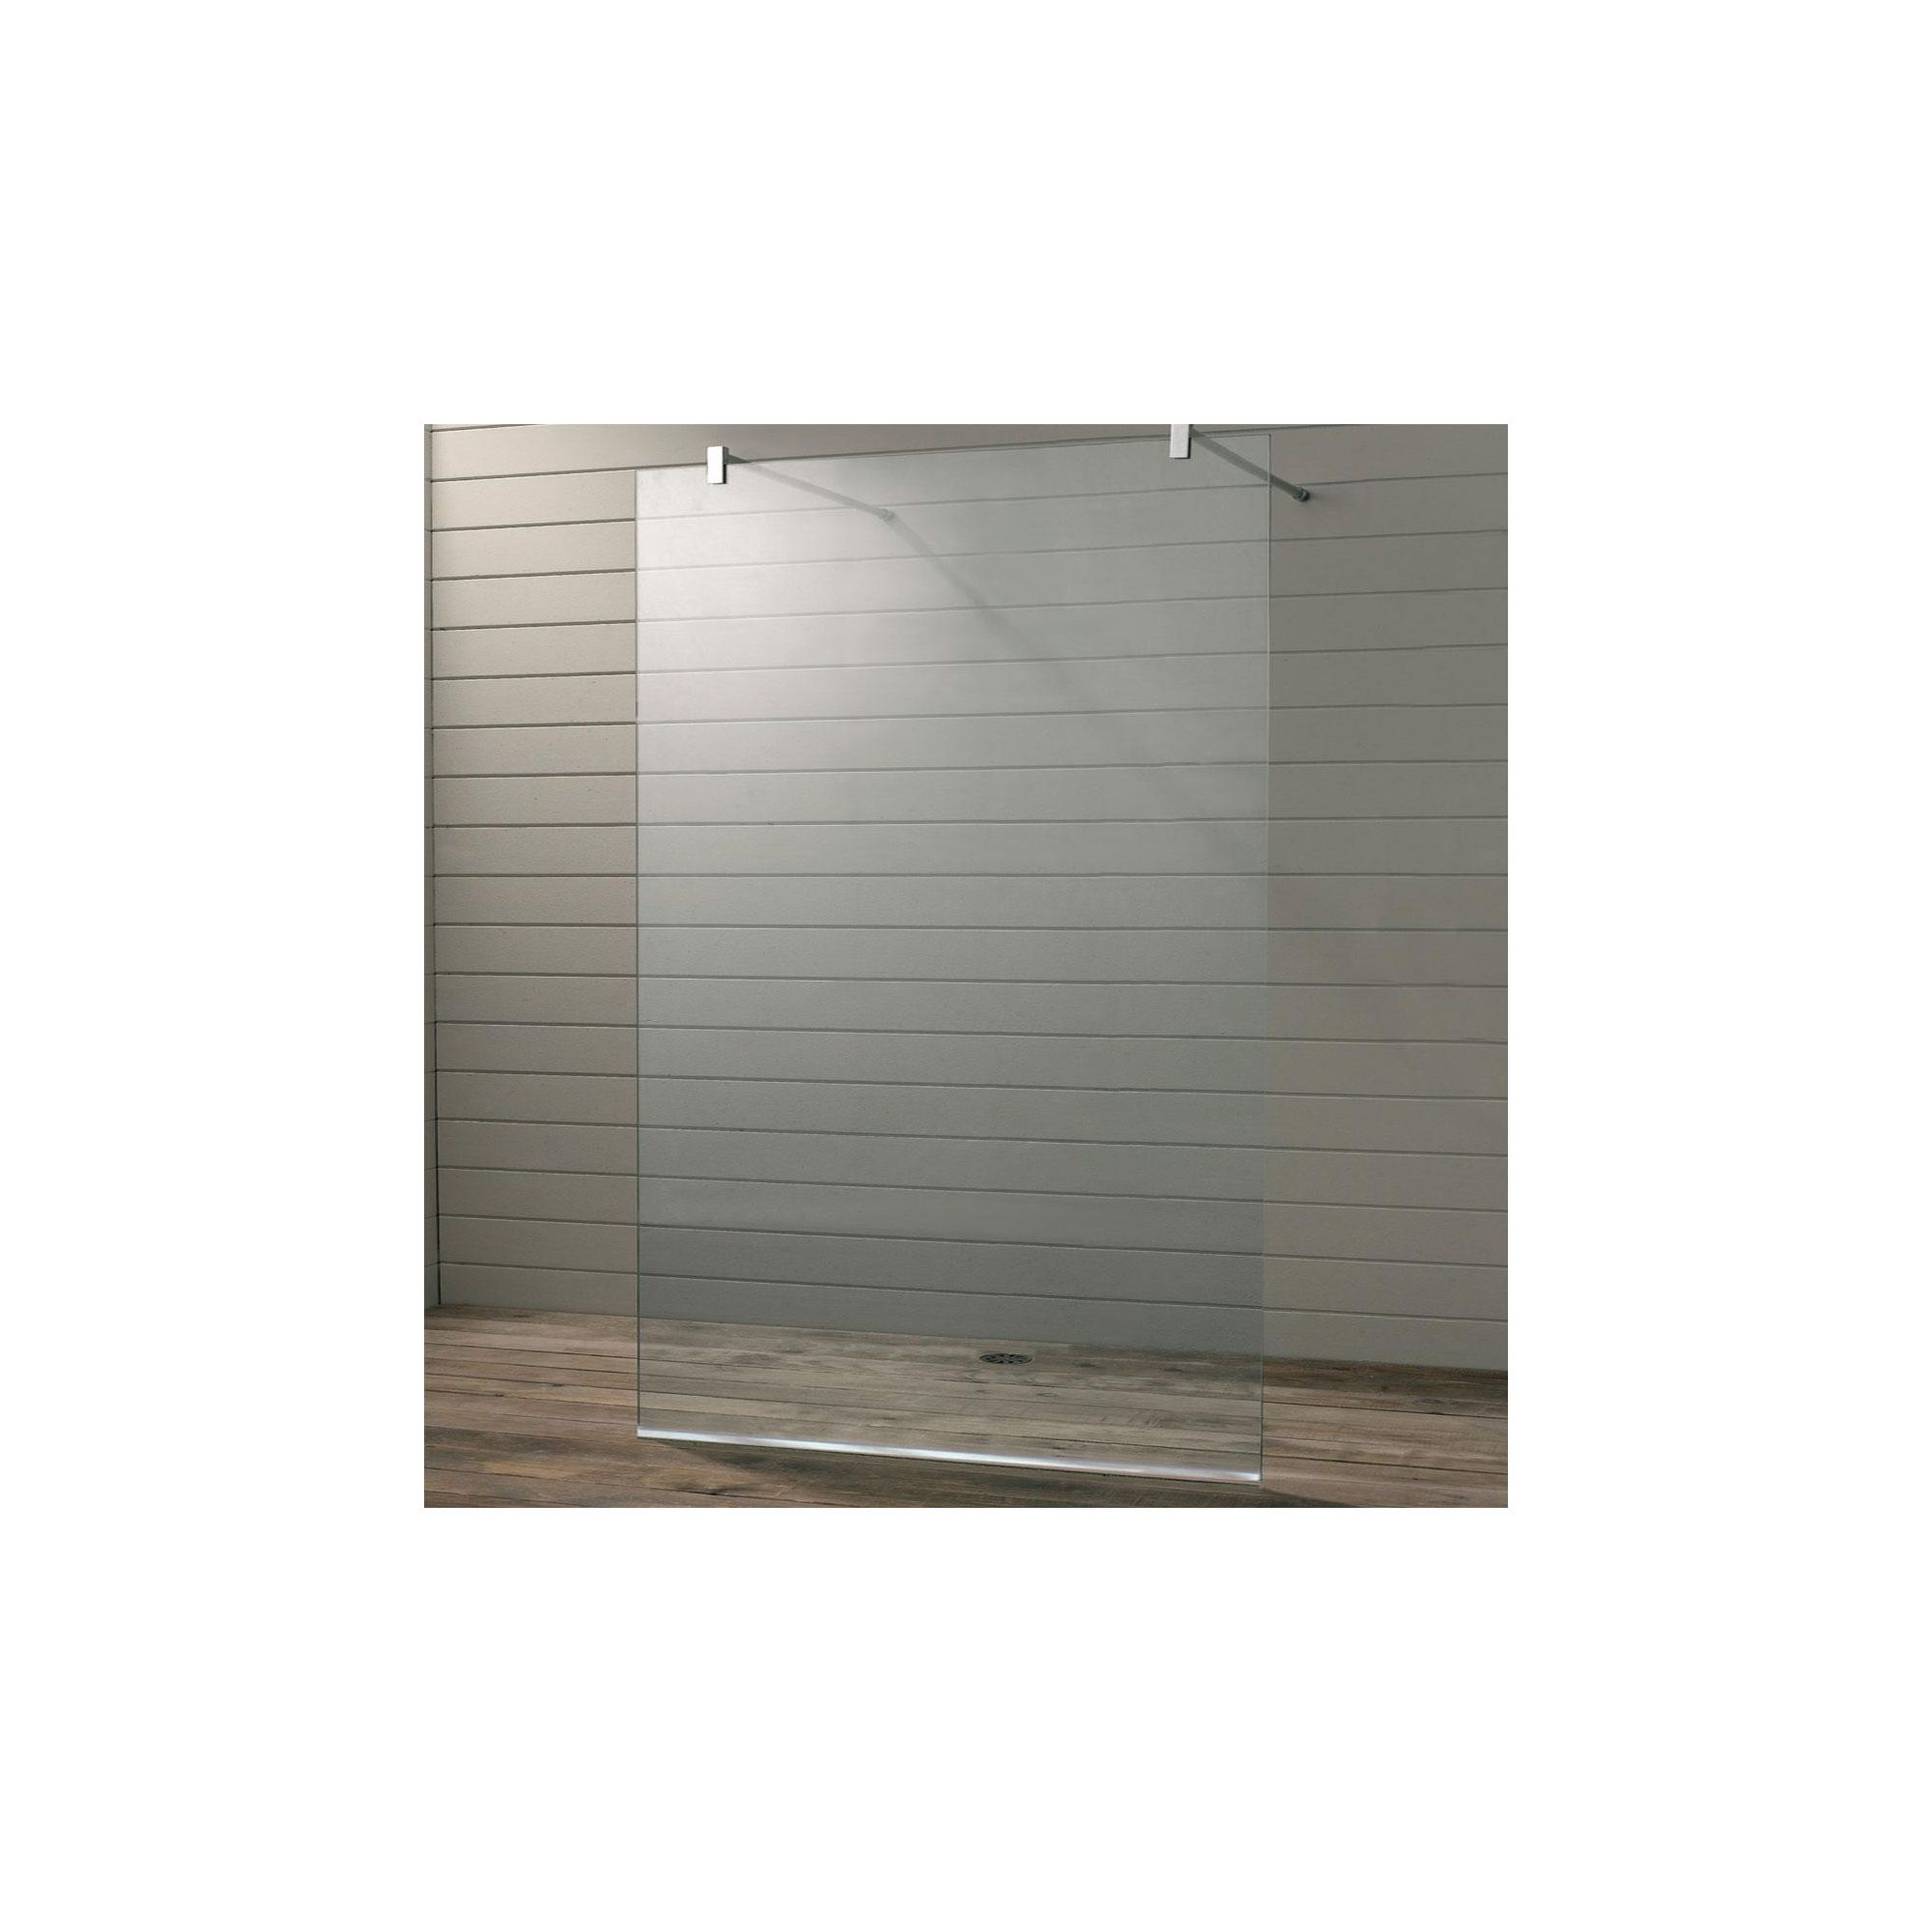 Duchy Premium Wet Room Glass Shower Panel, 900mm x 760mm, 10mm Glass, Low Profile Tray at Tesco Direct